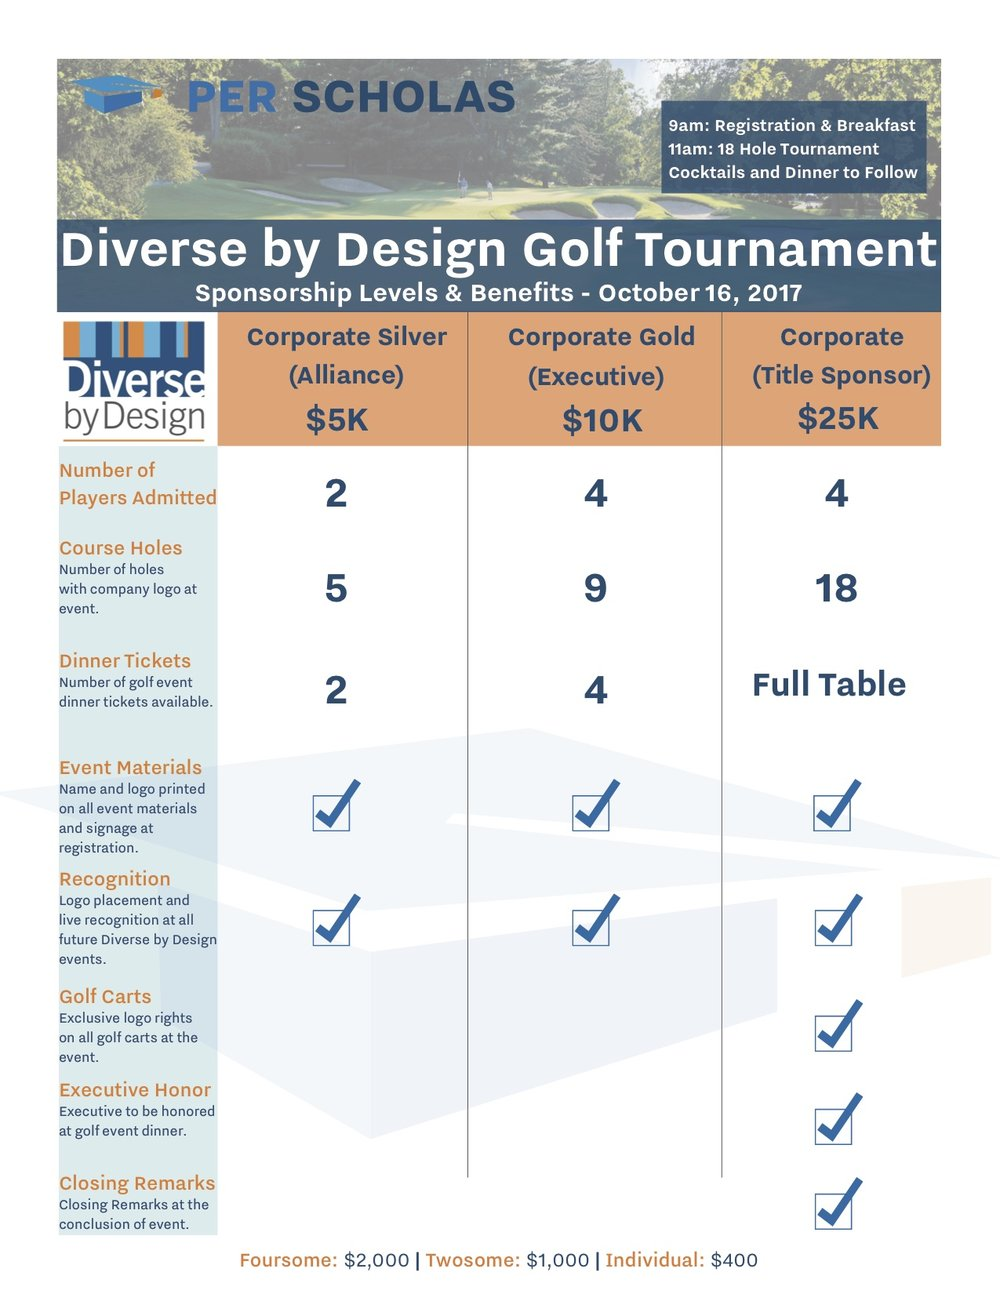 Diverse by Design Golf Sponsorship Chart_chl_6_21 (1) (1) 2.jpg